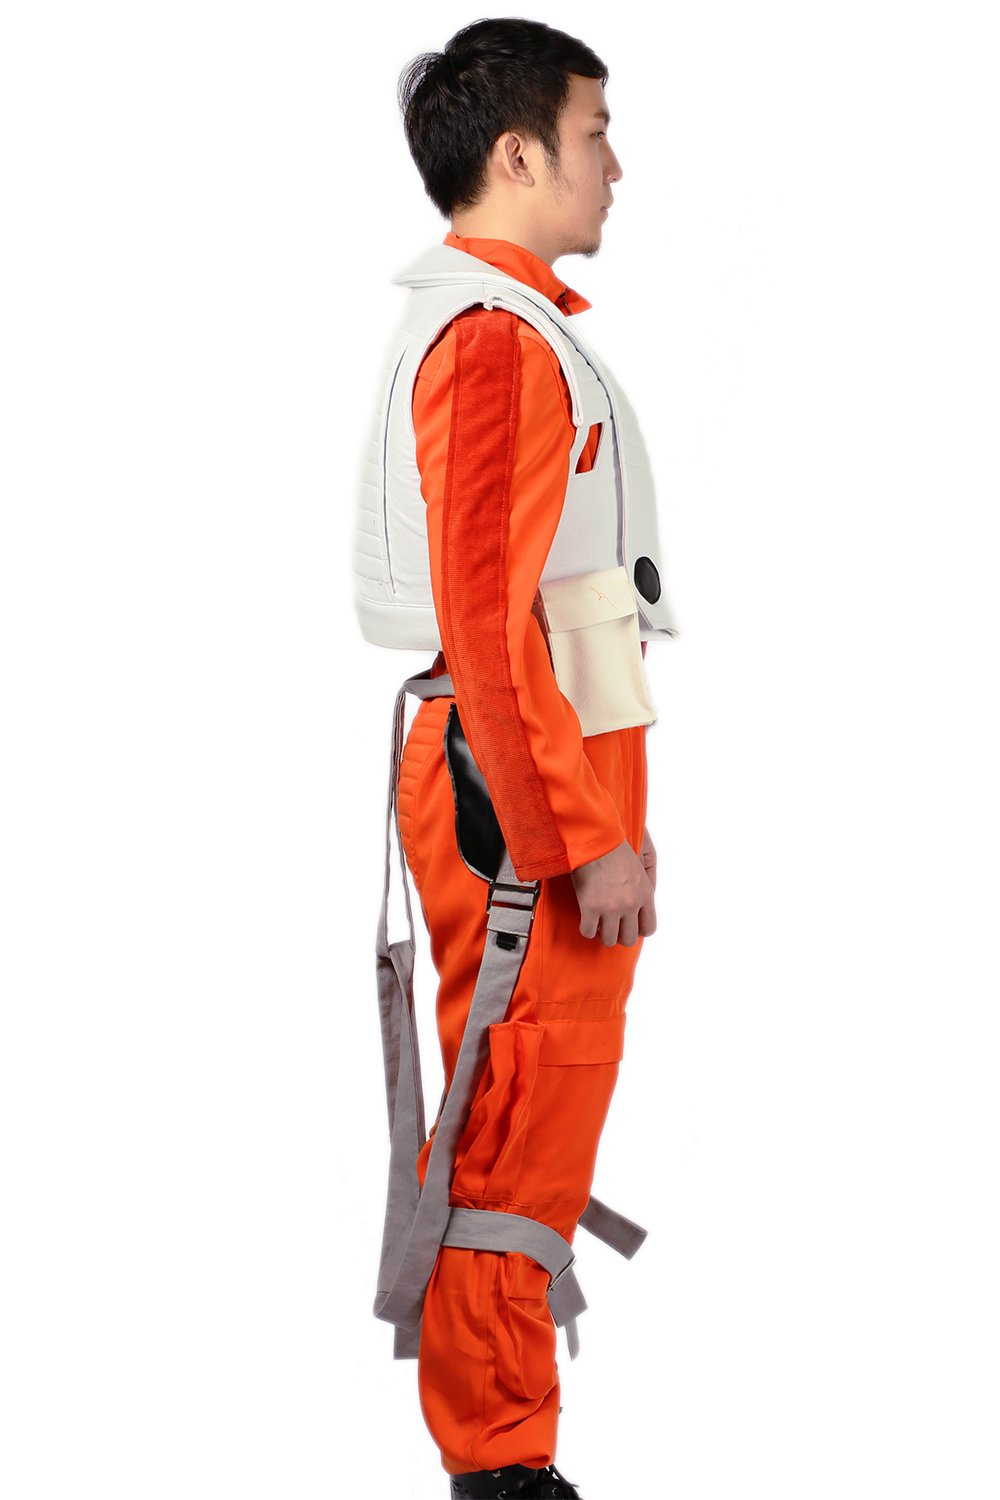 XCOSER Poe Dameron Costume Deluxe Orange Jumpsuit Suit Halloween Cosplay Outfit XL by xcoser (Image #6)